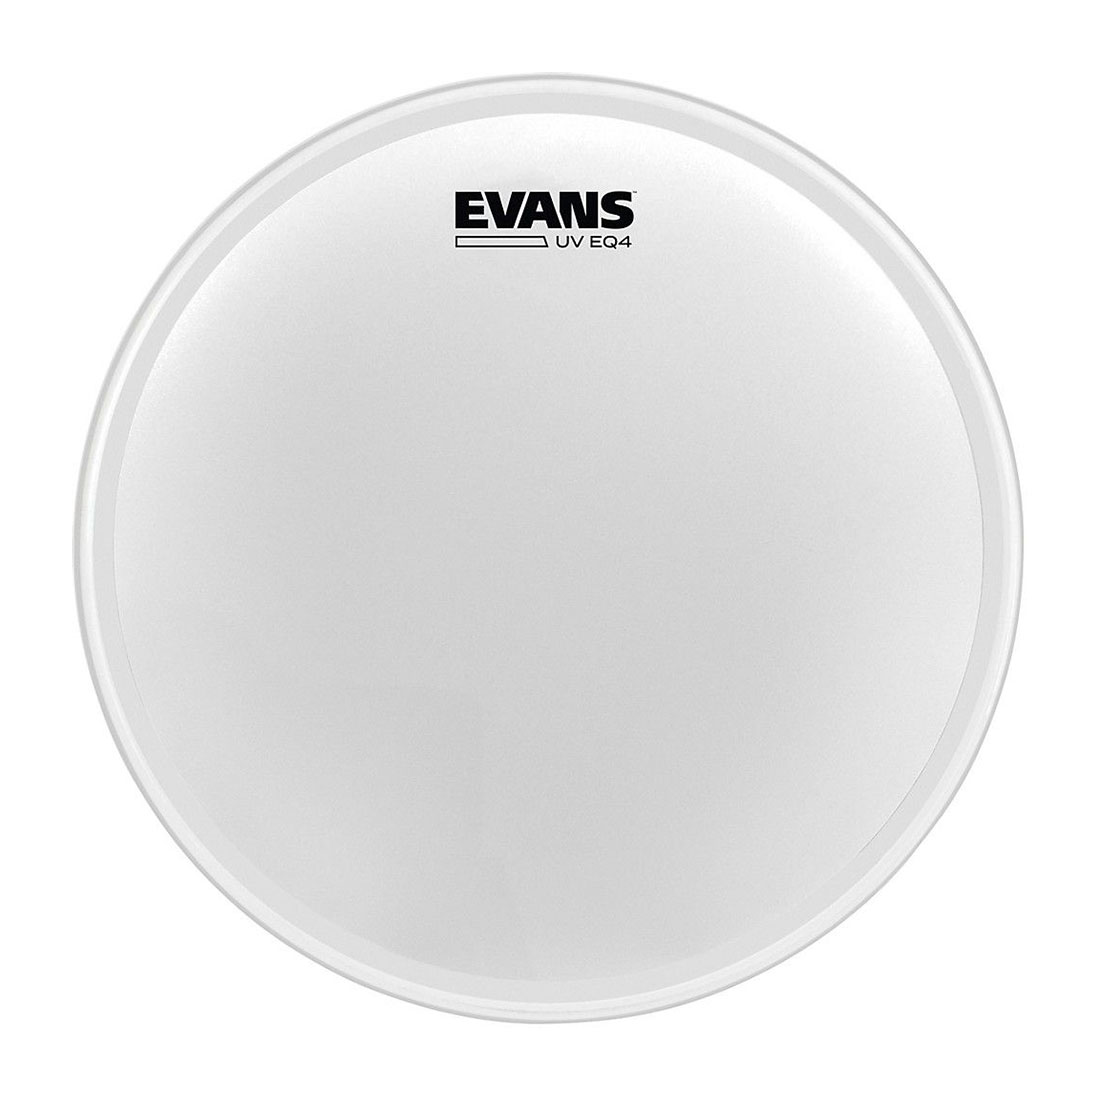 "Evans 24"" UV EQ4 Coated Bass Drum Head"